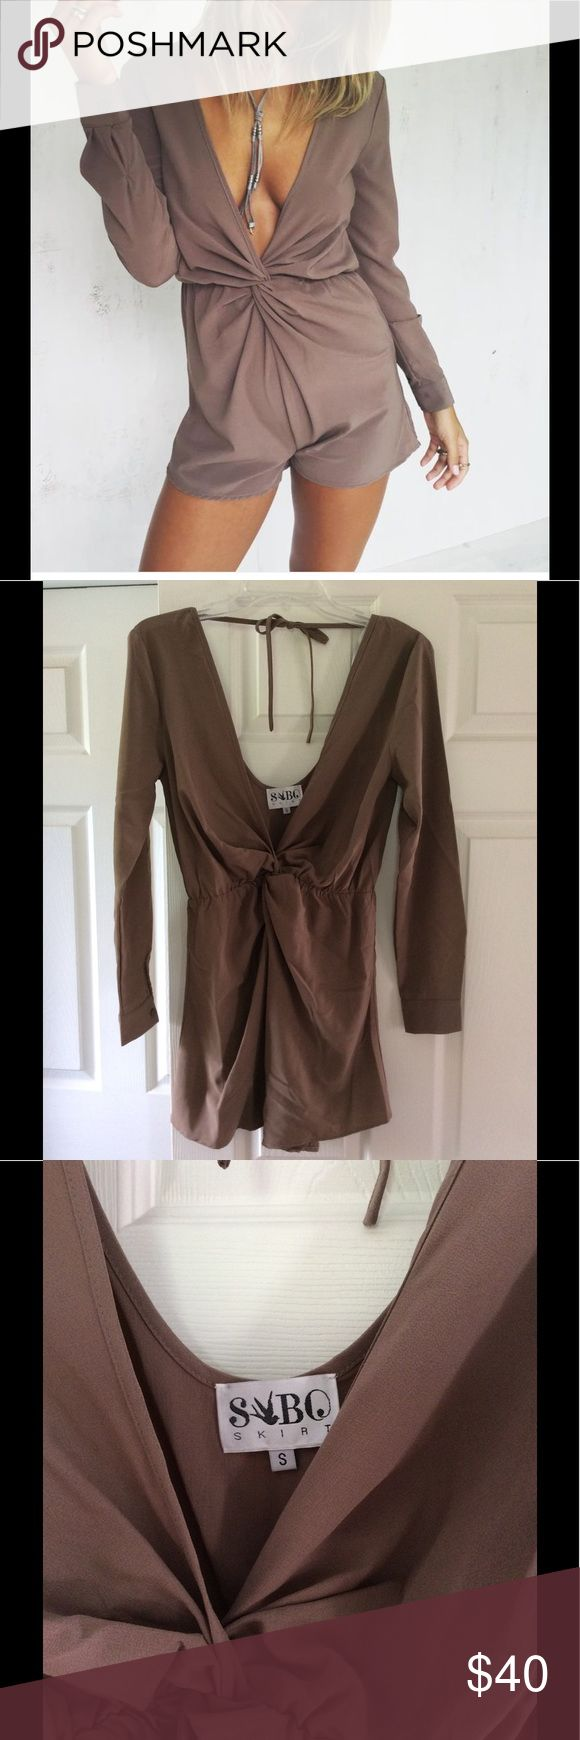 Sabo Skirt Mika Playsuit / Romper Sabo Skirt Mika Playsuit in a beautiful chocolate brown color. Size small. 100 % polyester. Excellent condition. Only worn twice. Sabo Skirt Pants Jumpsuits & Rompers